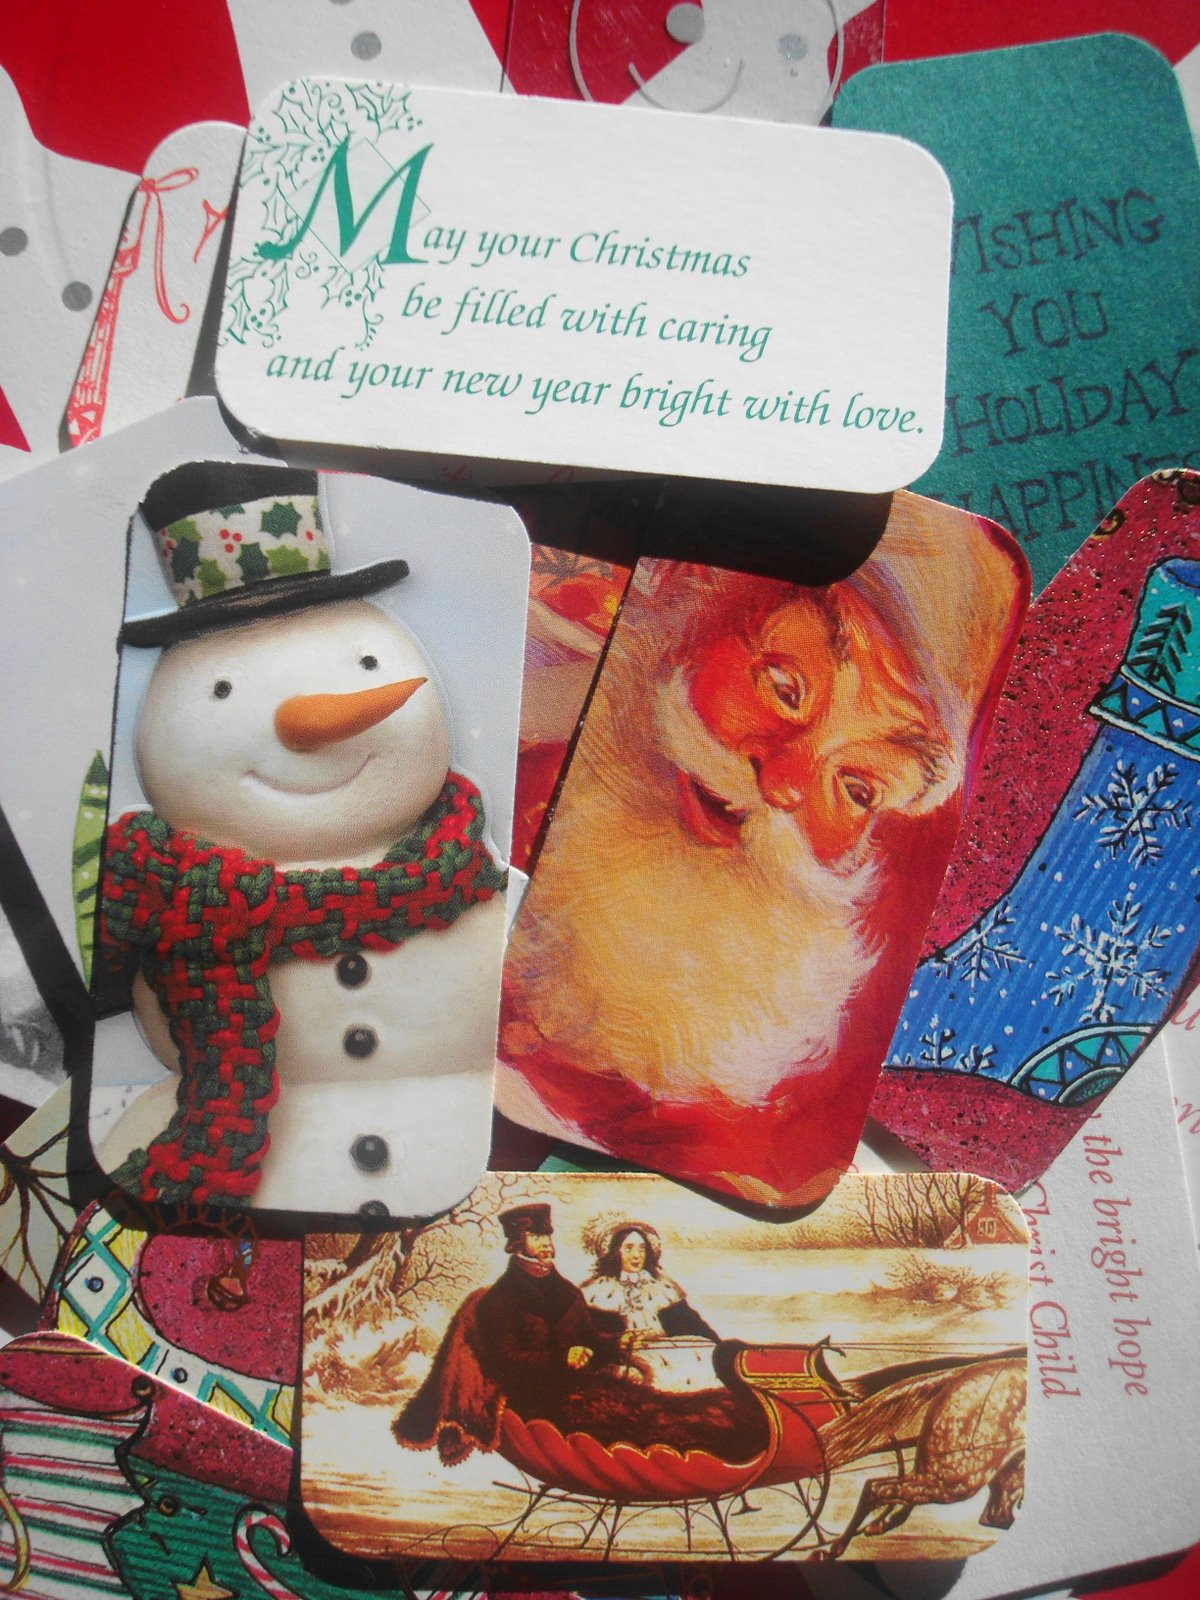 Use old Christmas cards instead of throwing them out